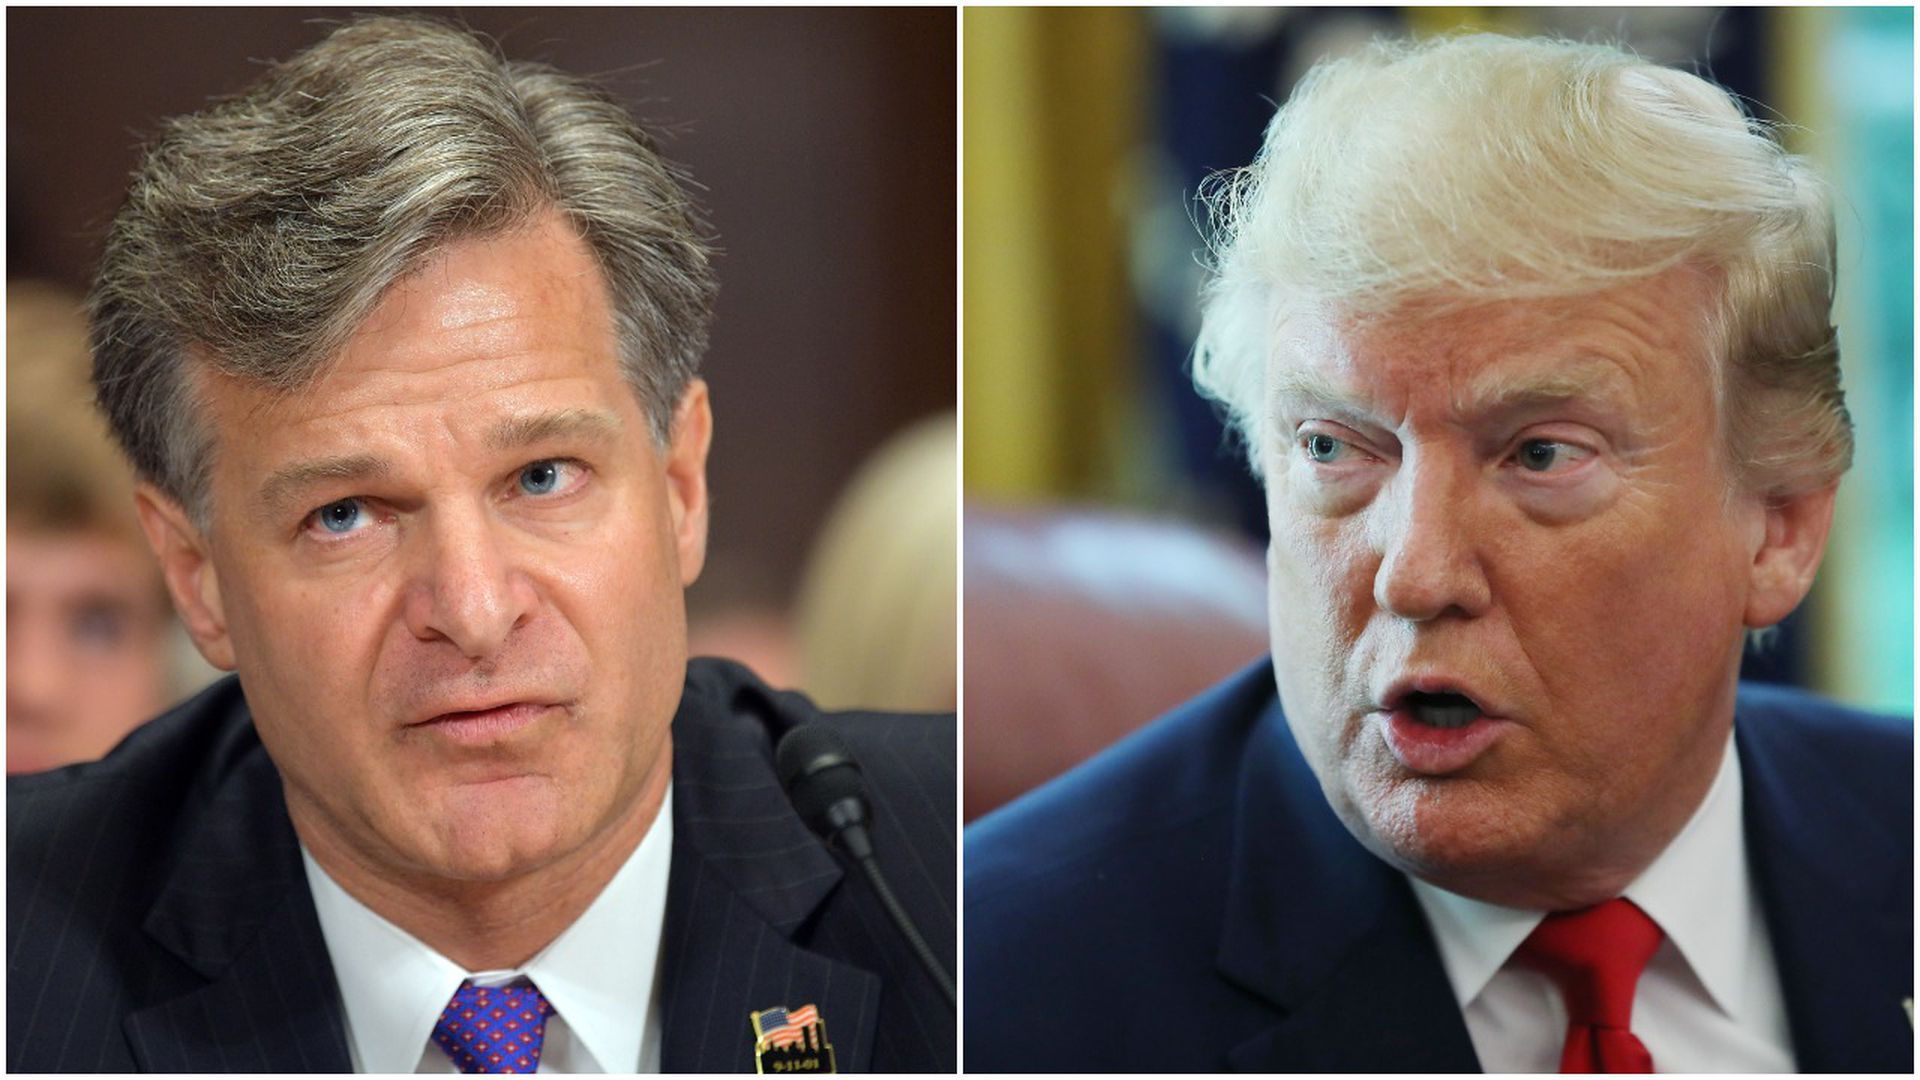 This image is a split-screen of Wray and Trump.